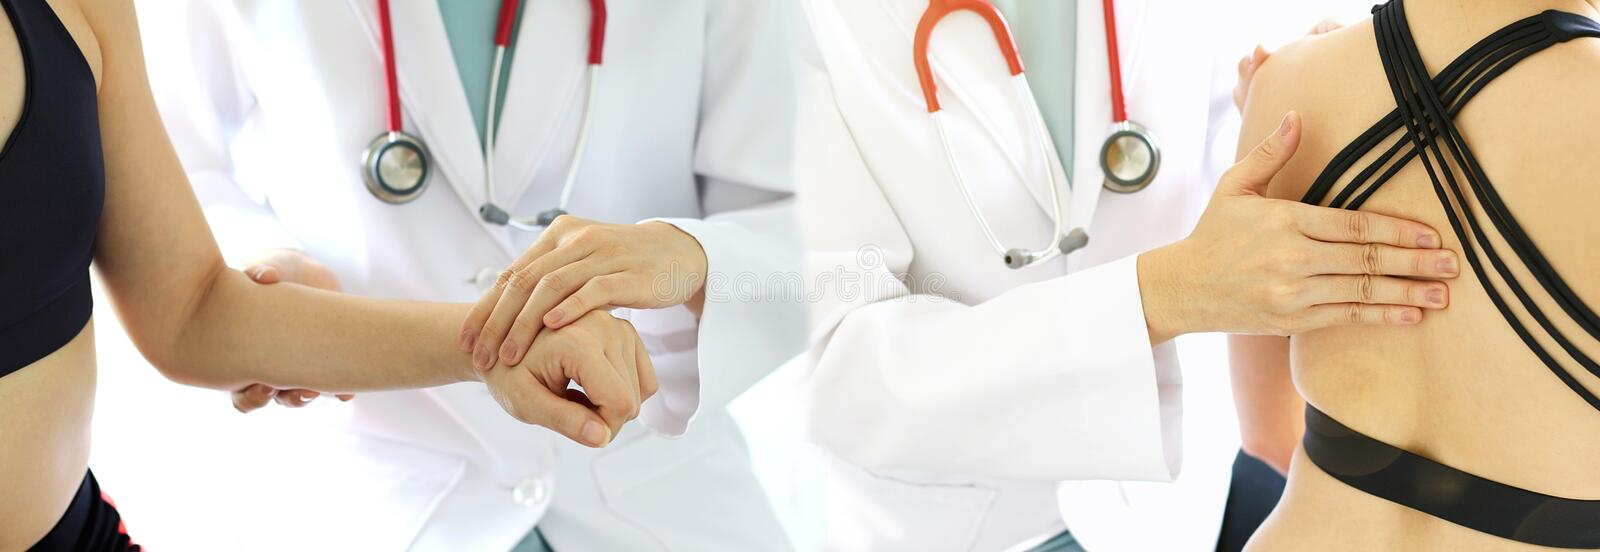 Medical orthopedic doctor examining joint pain woman patient. royalty free stock images